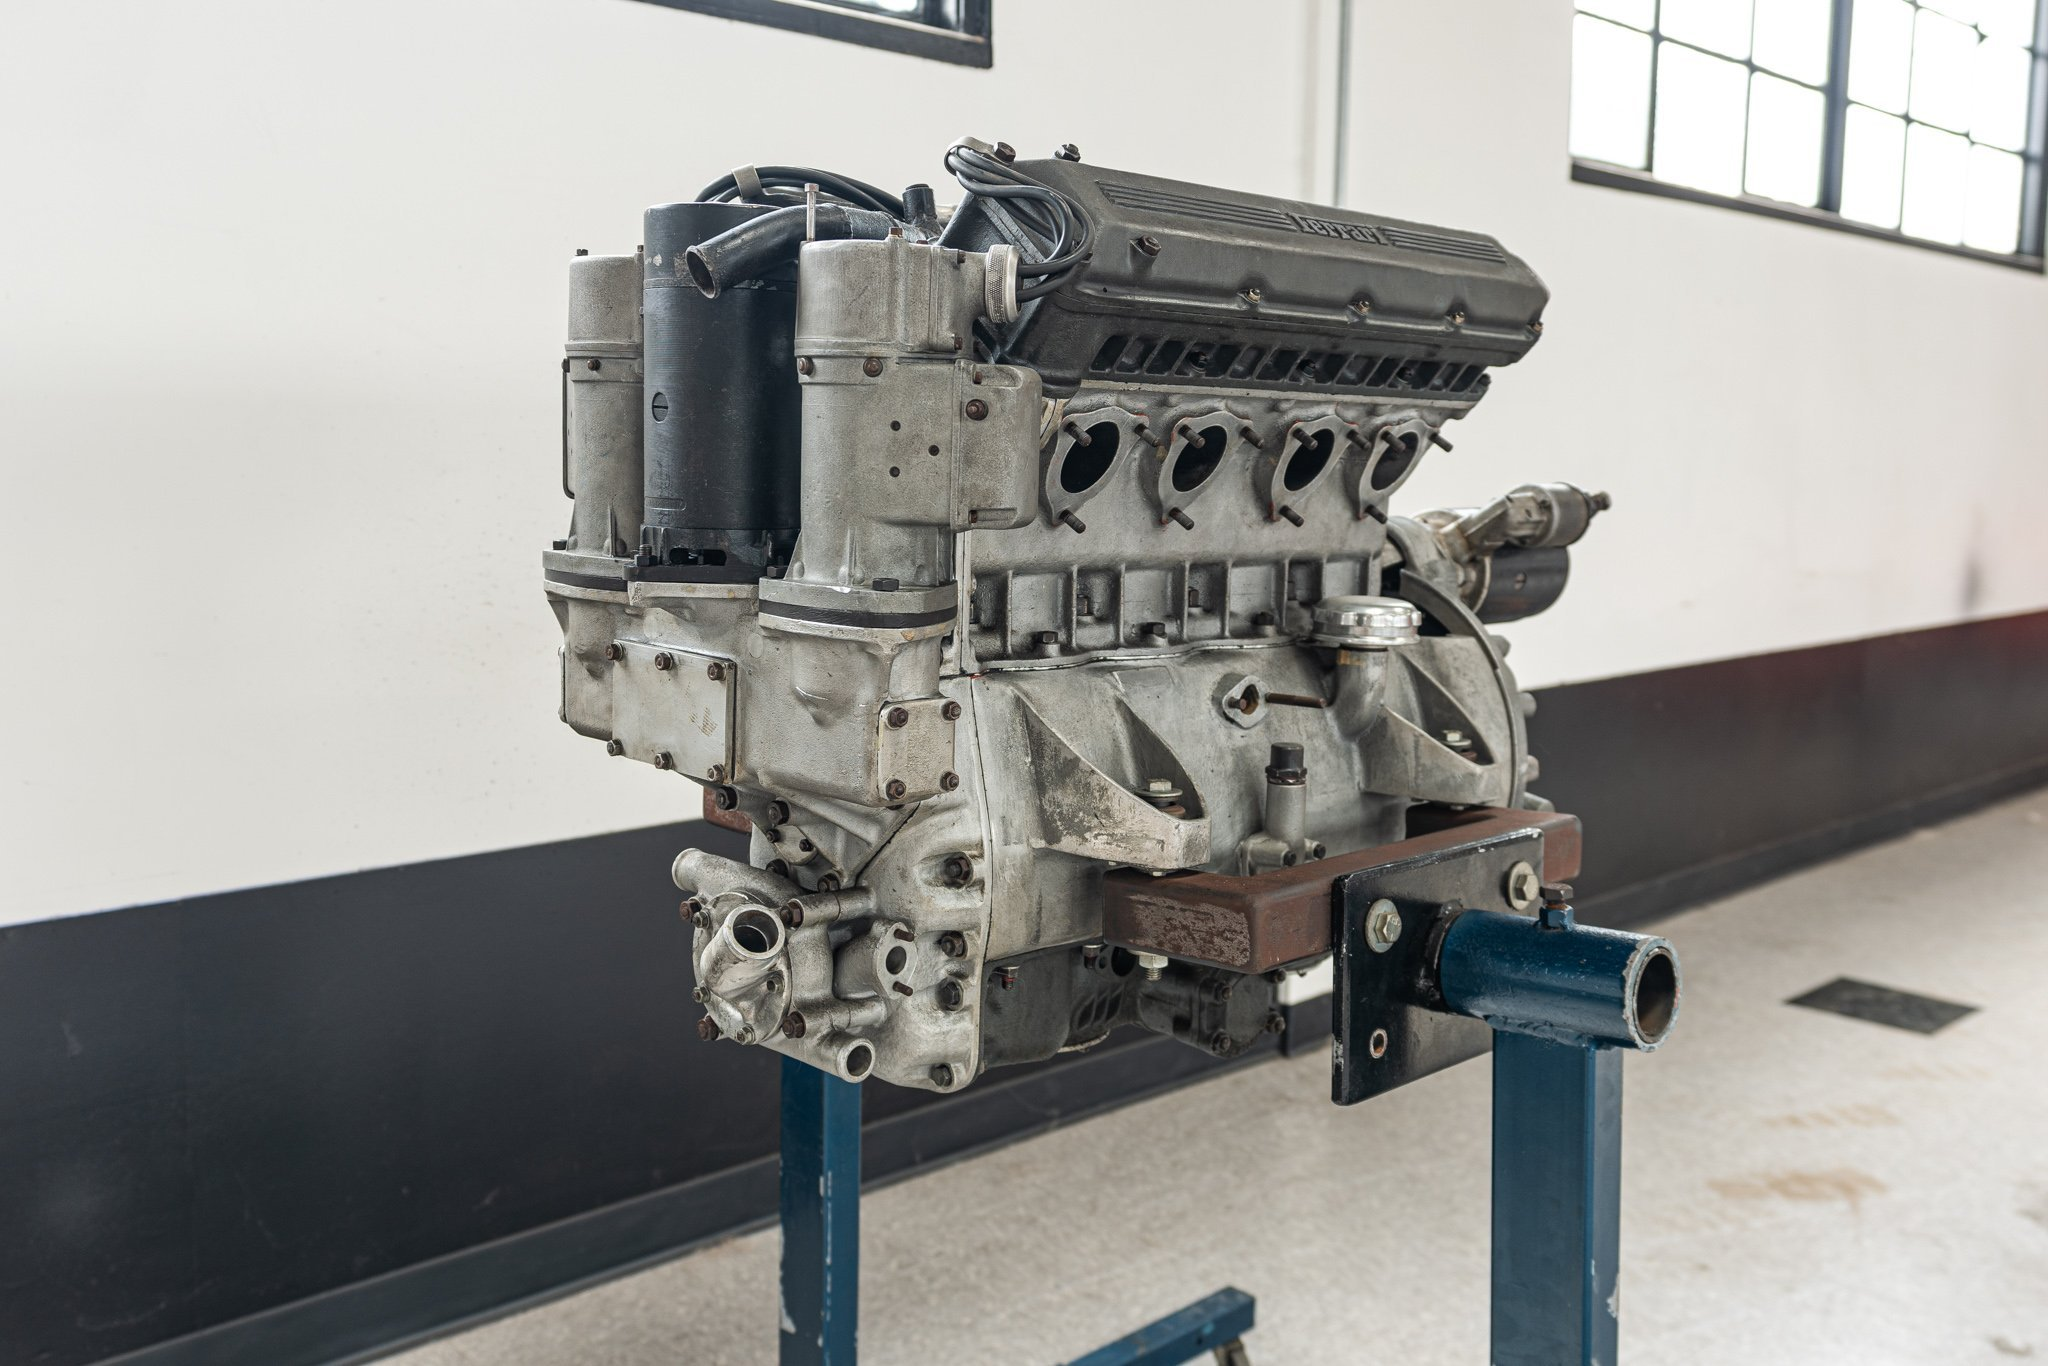 1955 500 Mondial Series II engine